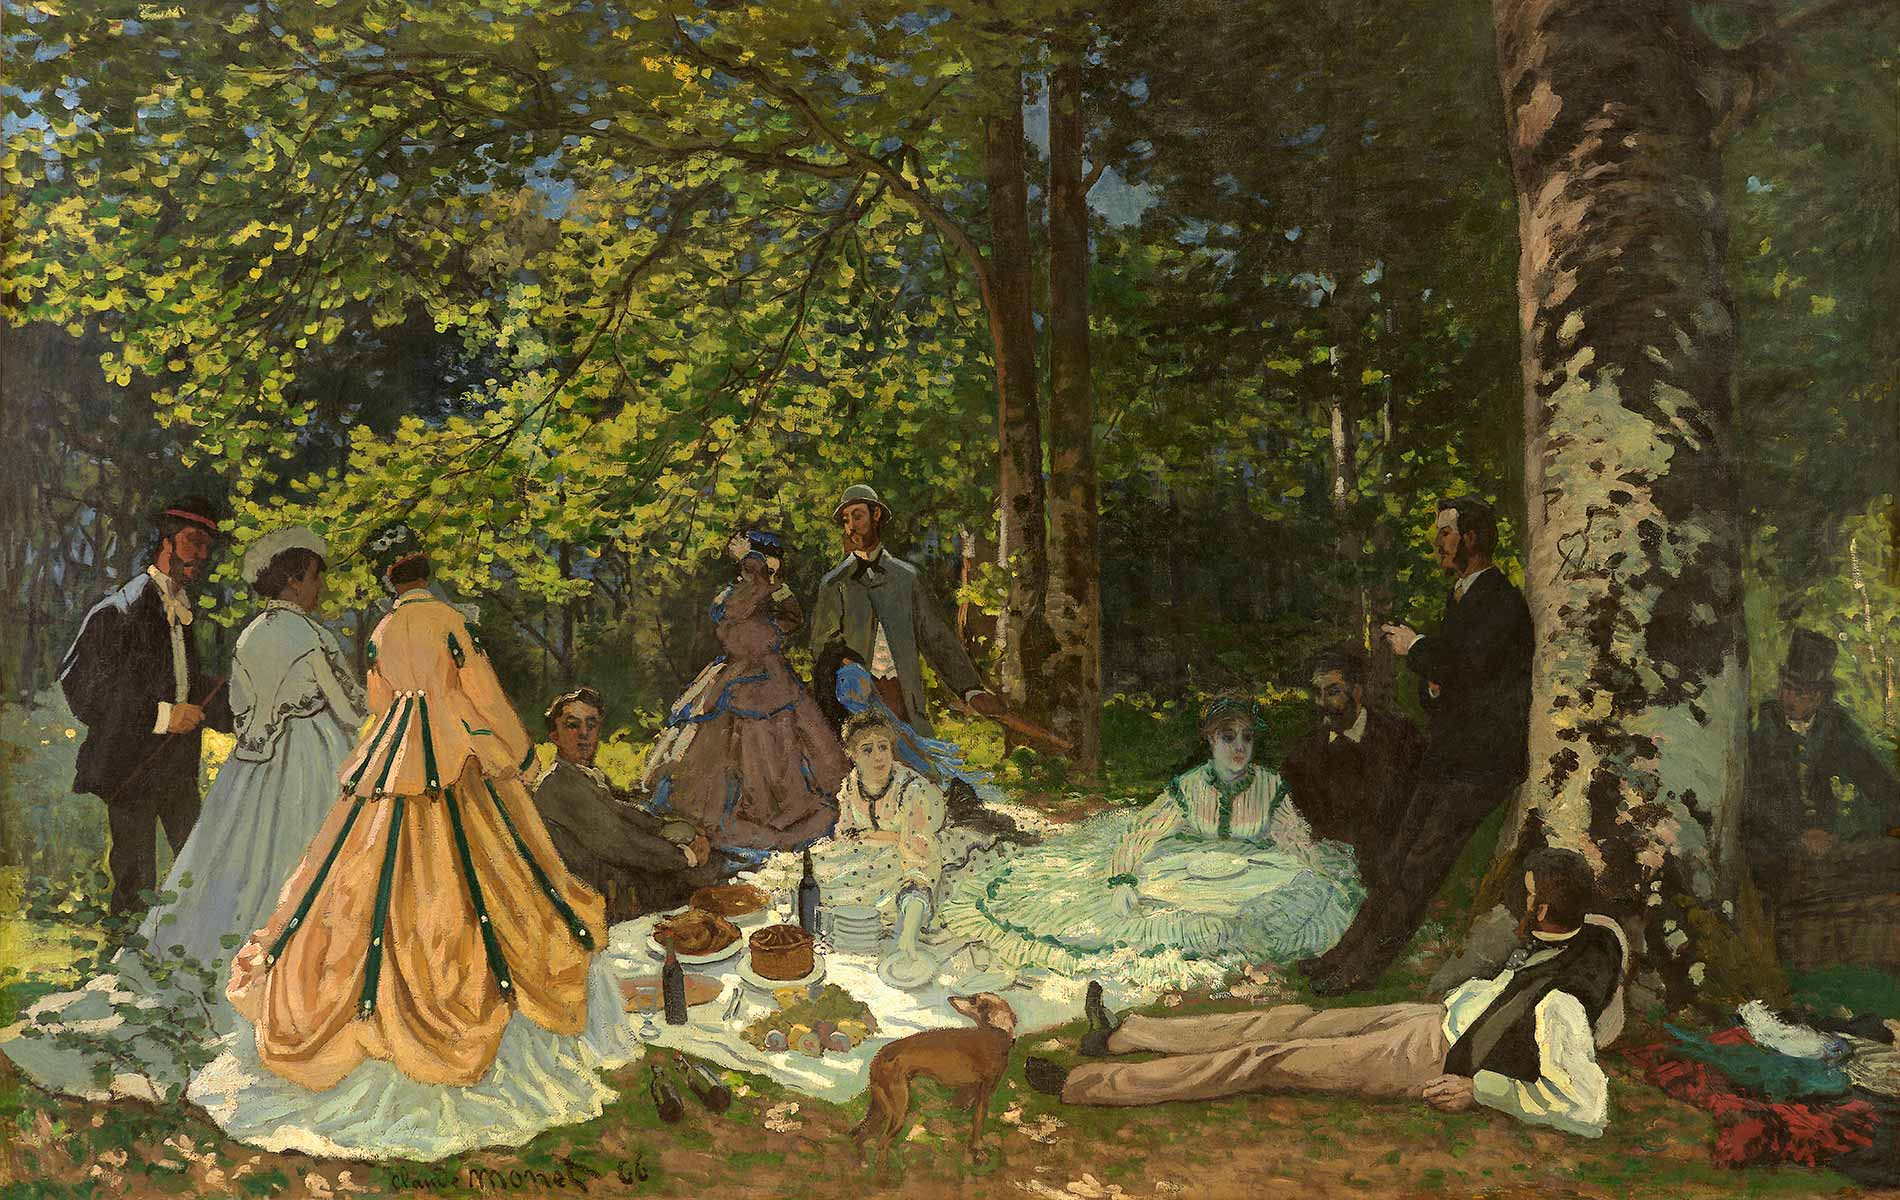 Claude Monet, Le Déjeuner sur l'herbe, 1866. Courtesy Pushkin Museum, Moscow Louis Vuitton Icons of Modern Art: The Shchukin Collection